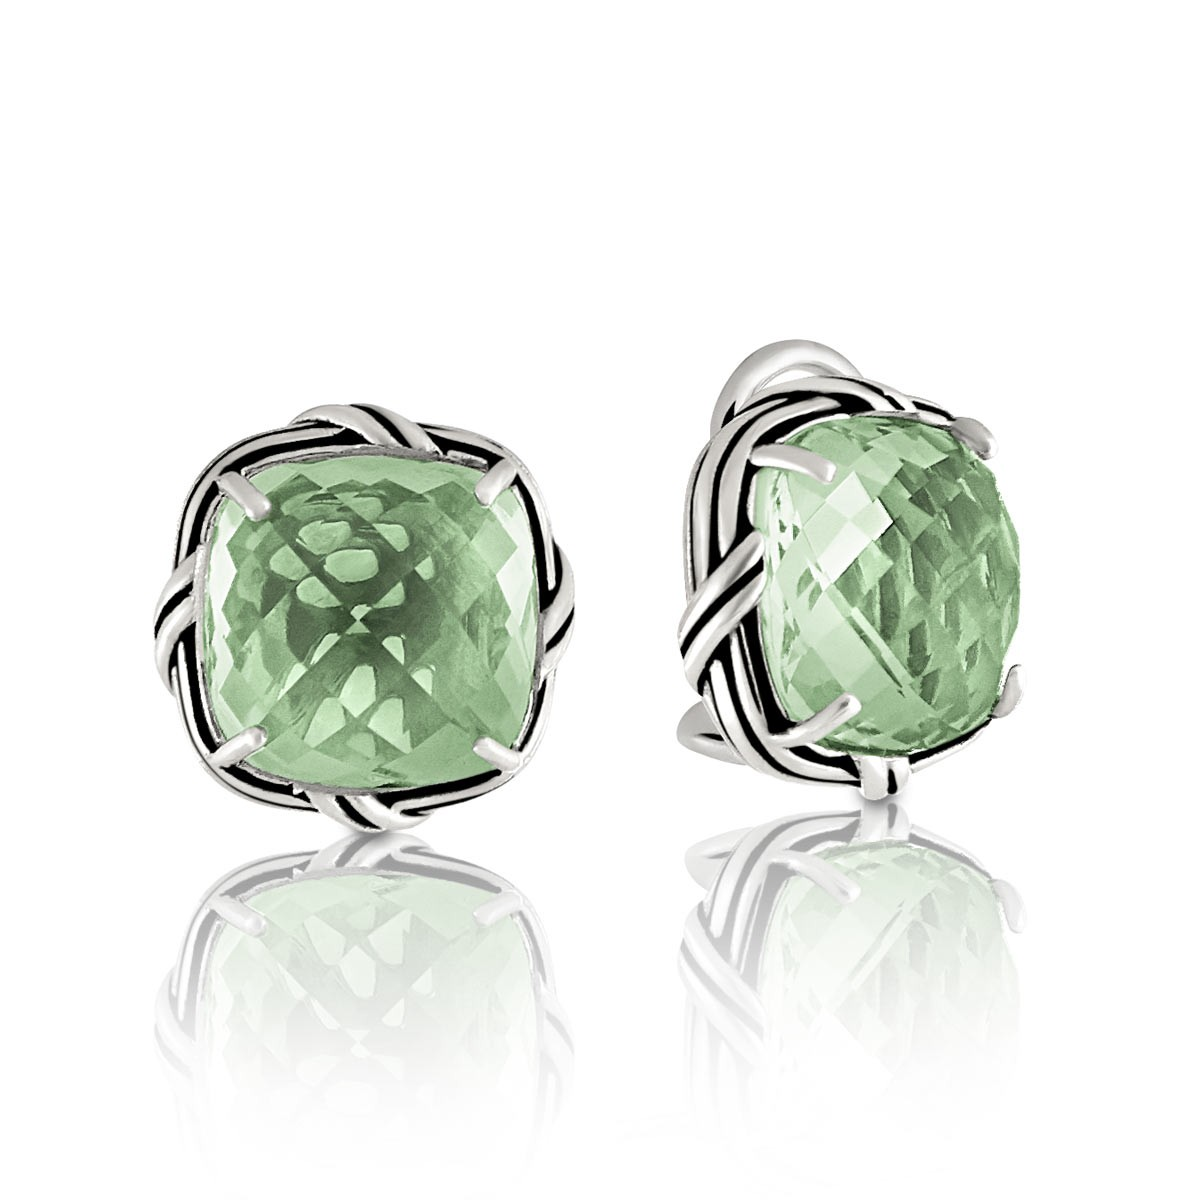 Prasiolite Clip Earrings In Sterling Silver